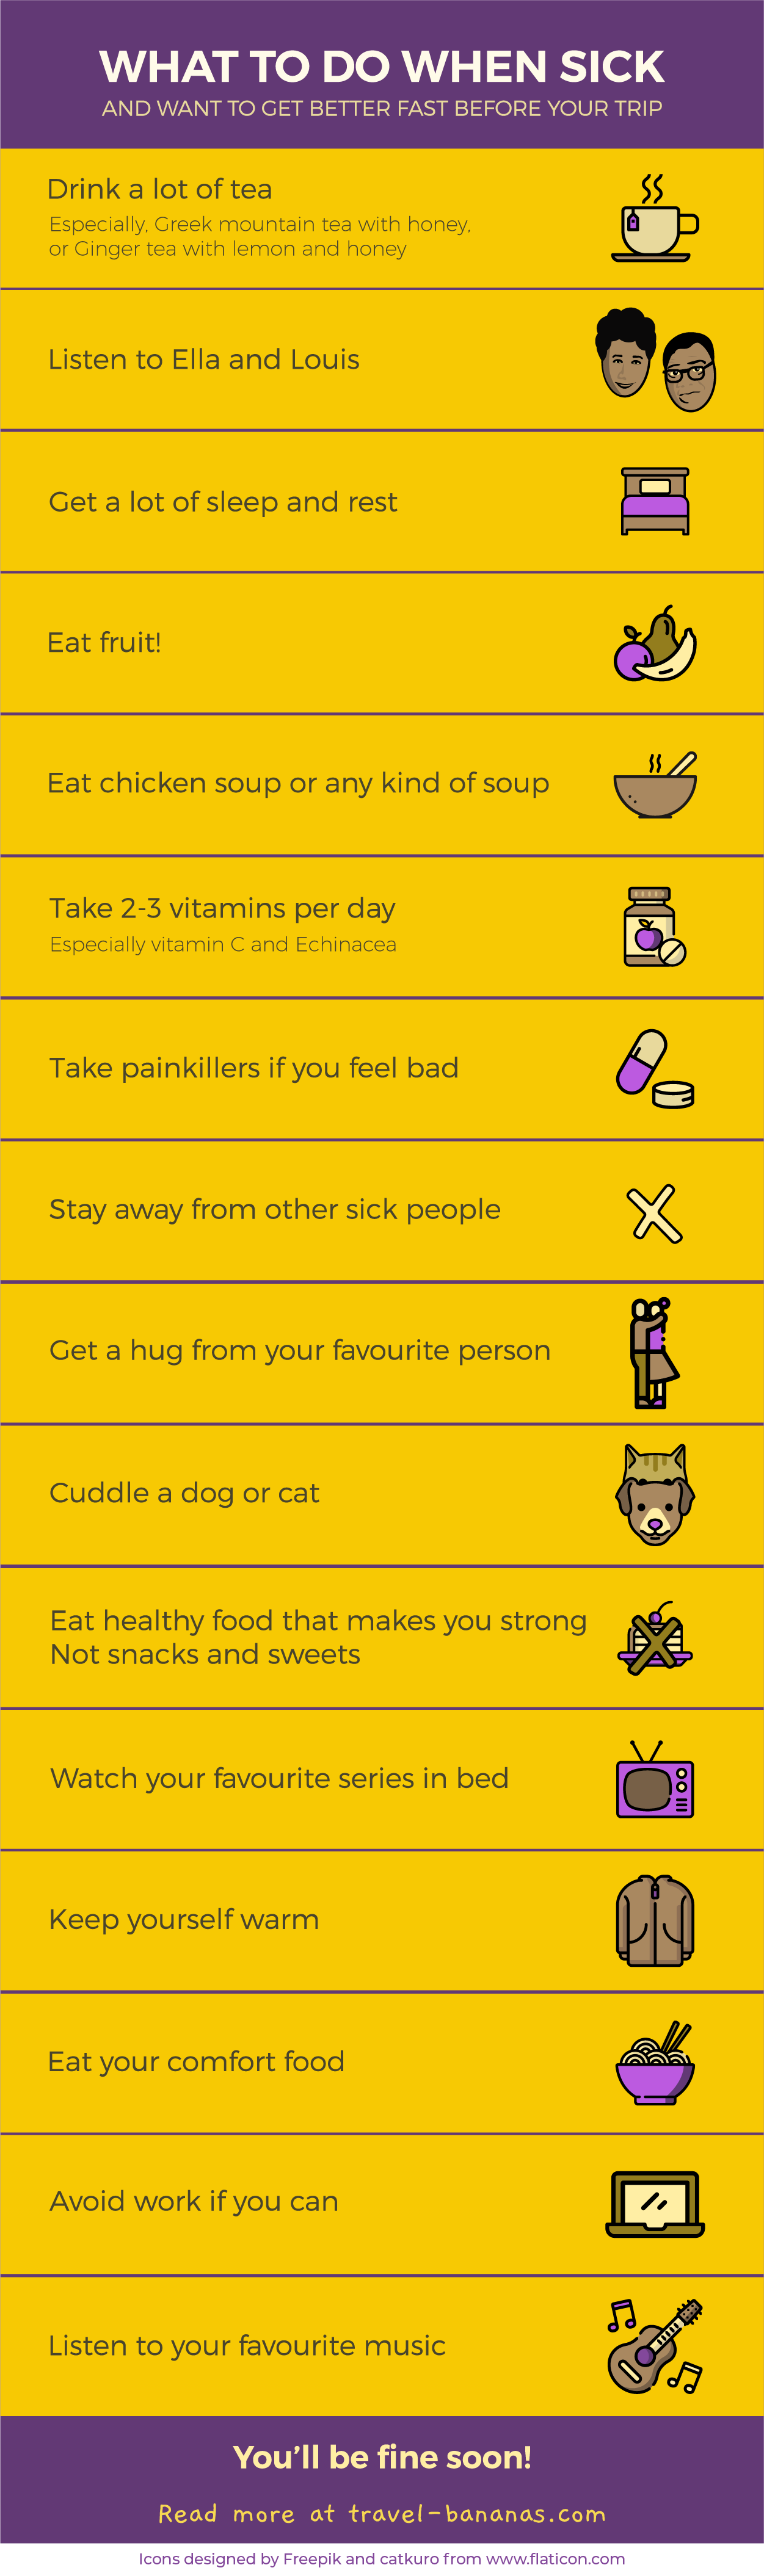 Infographic - What to do if you get sick